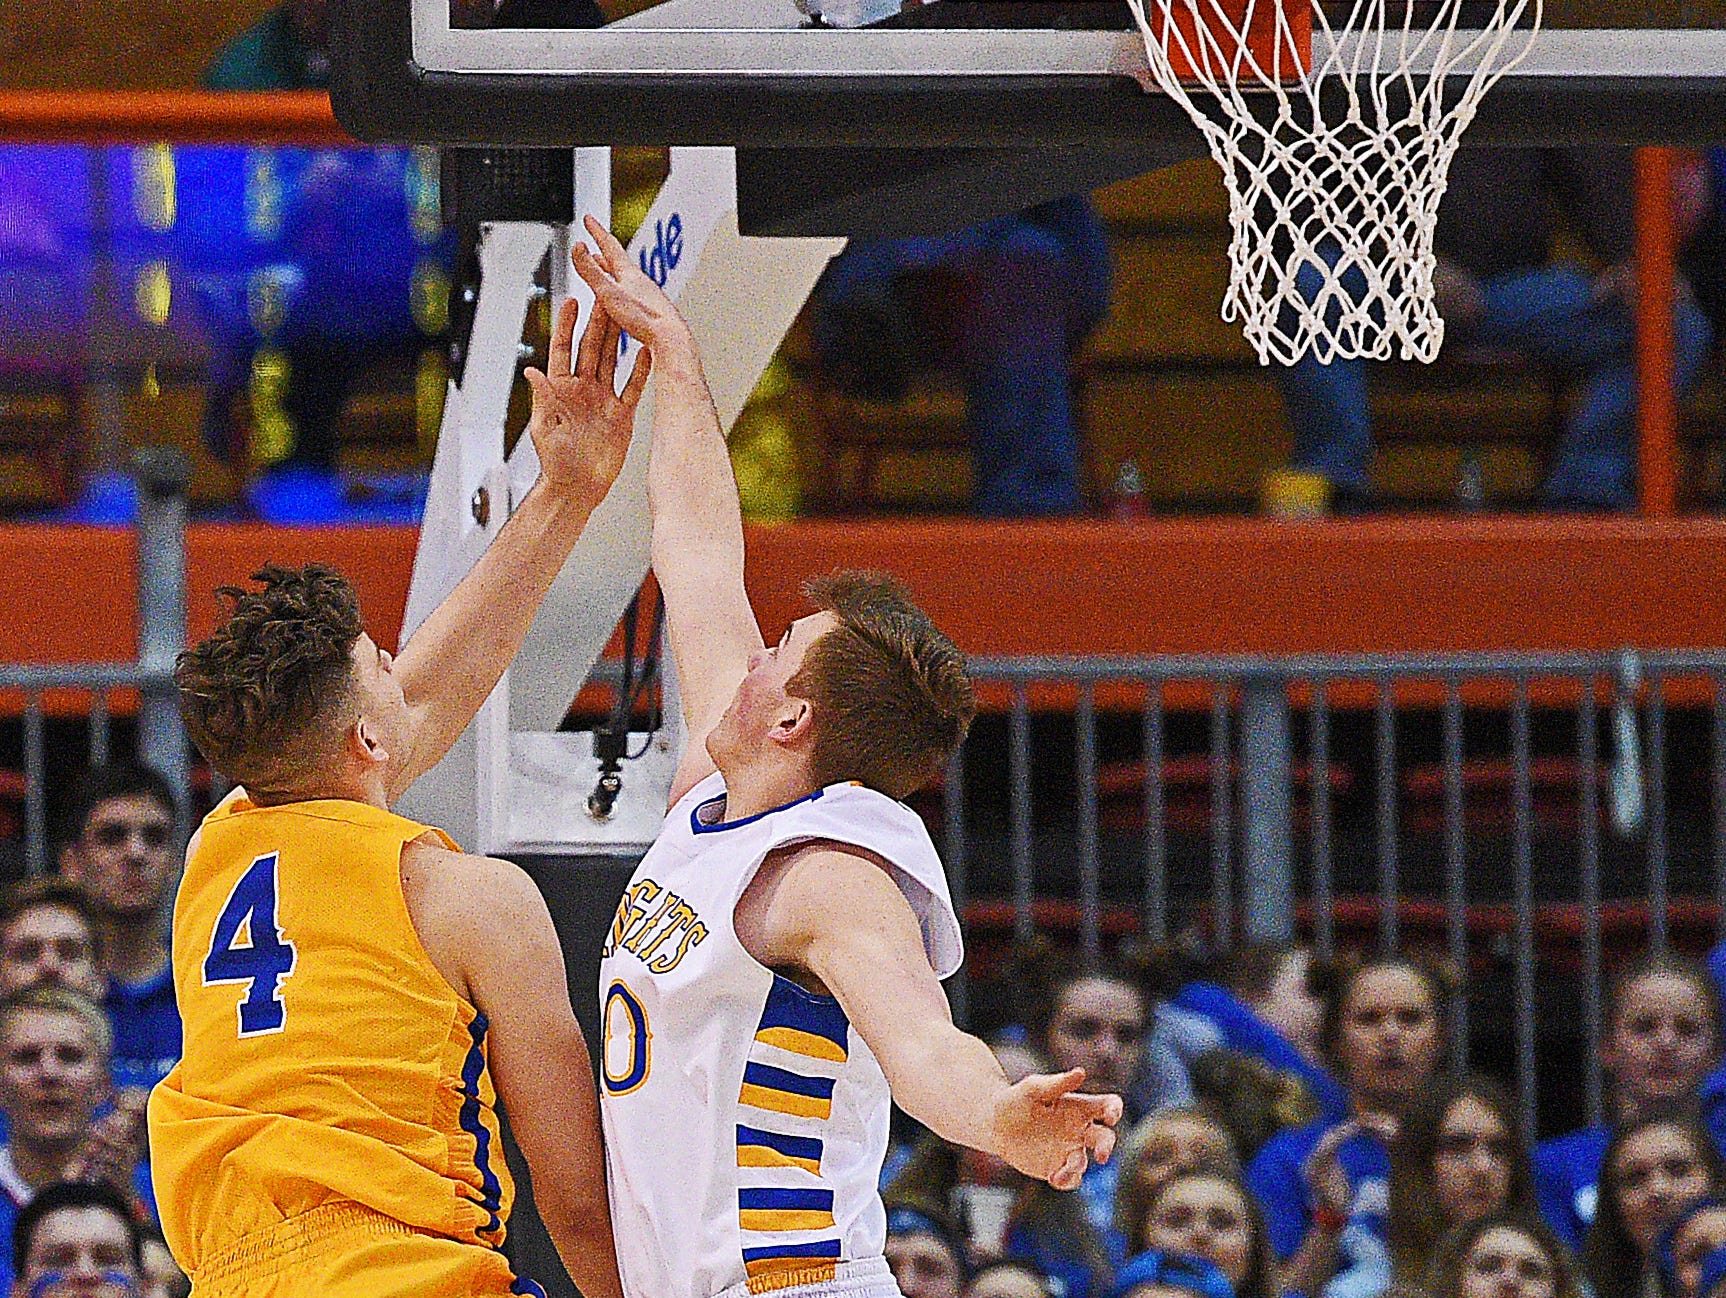 Aberdeen Central's Christian Goetz (4) goes up for a shot as O'Gorman's Jaron Zwagerman (40) defends during the 2017 SDHSAA Class AA State Boys Basketball championship game Saturday, March 18, 2017, at Rushmore Plaza Civic Center in Rapid City.